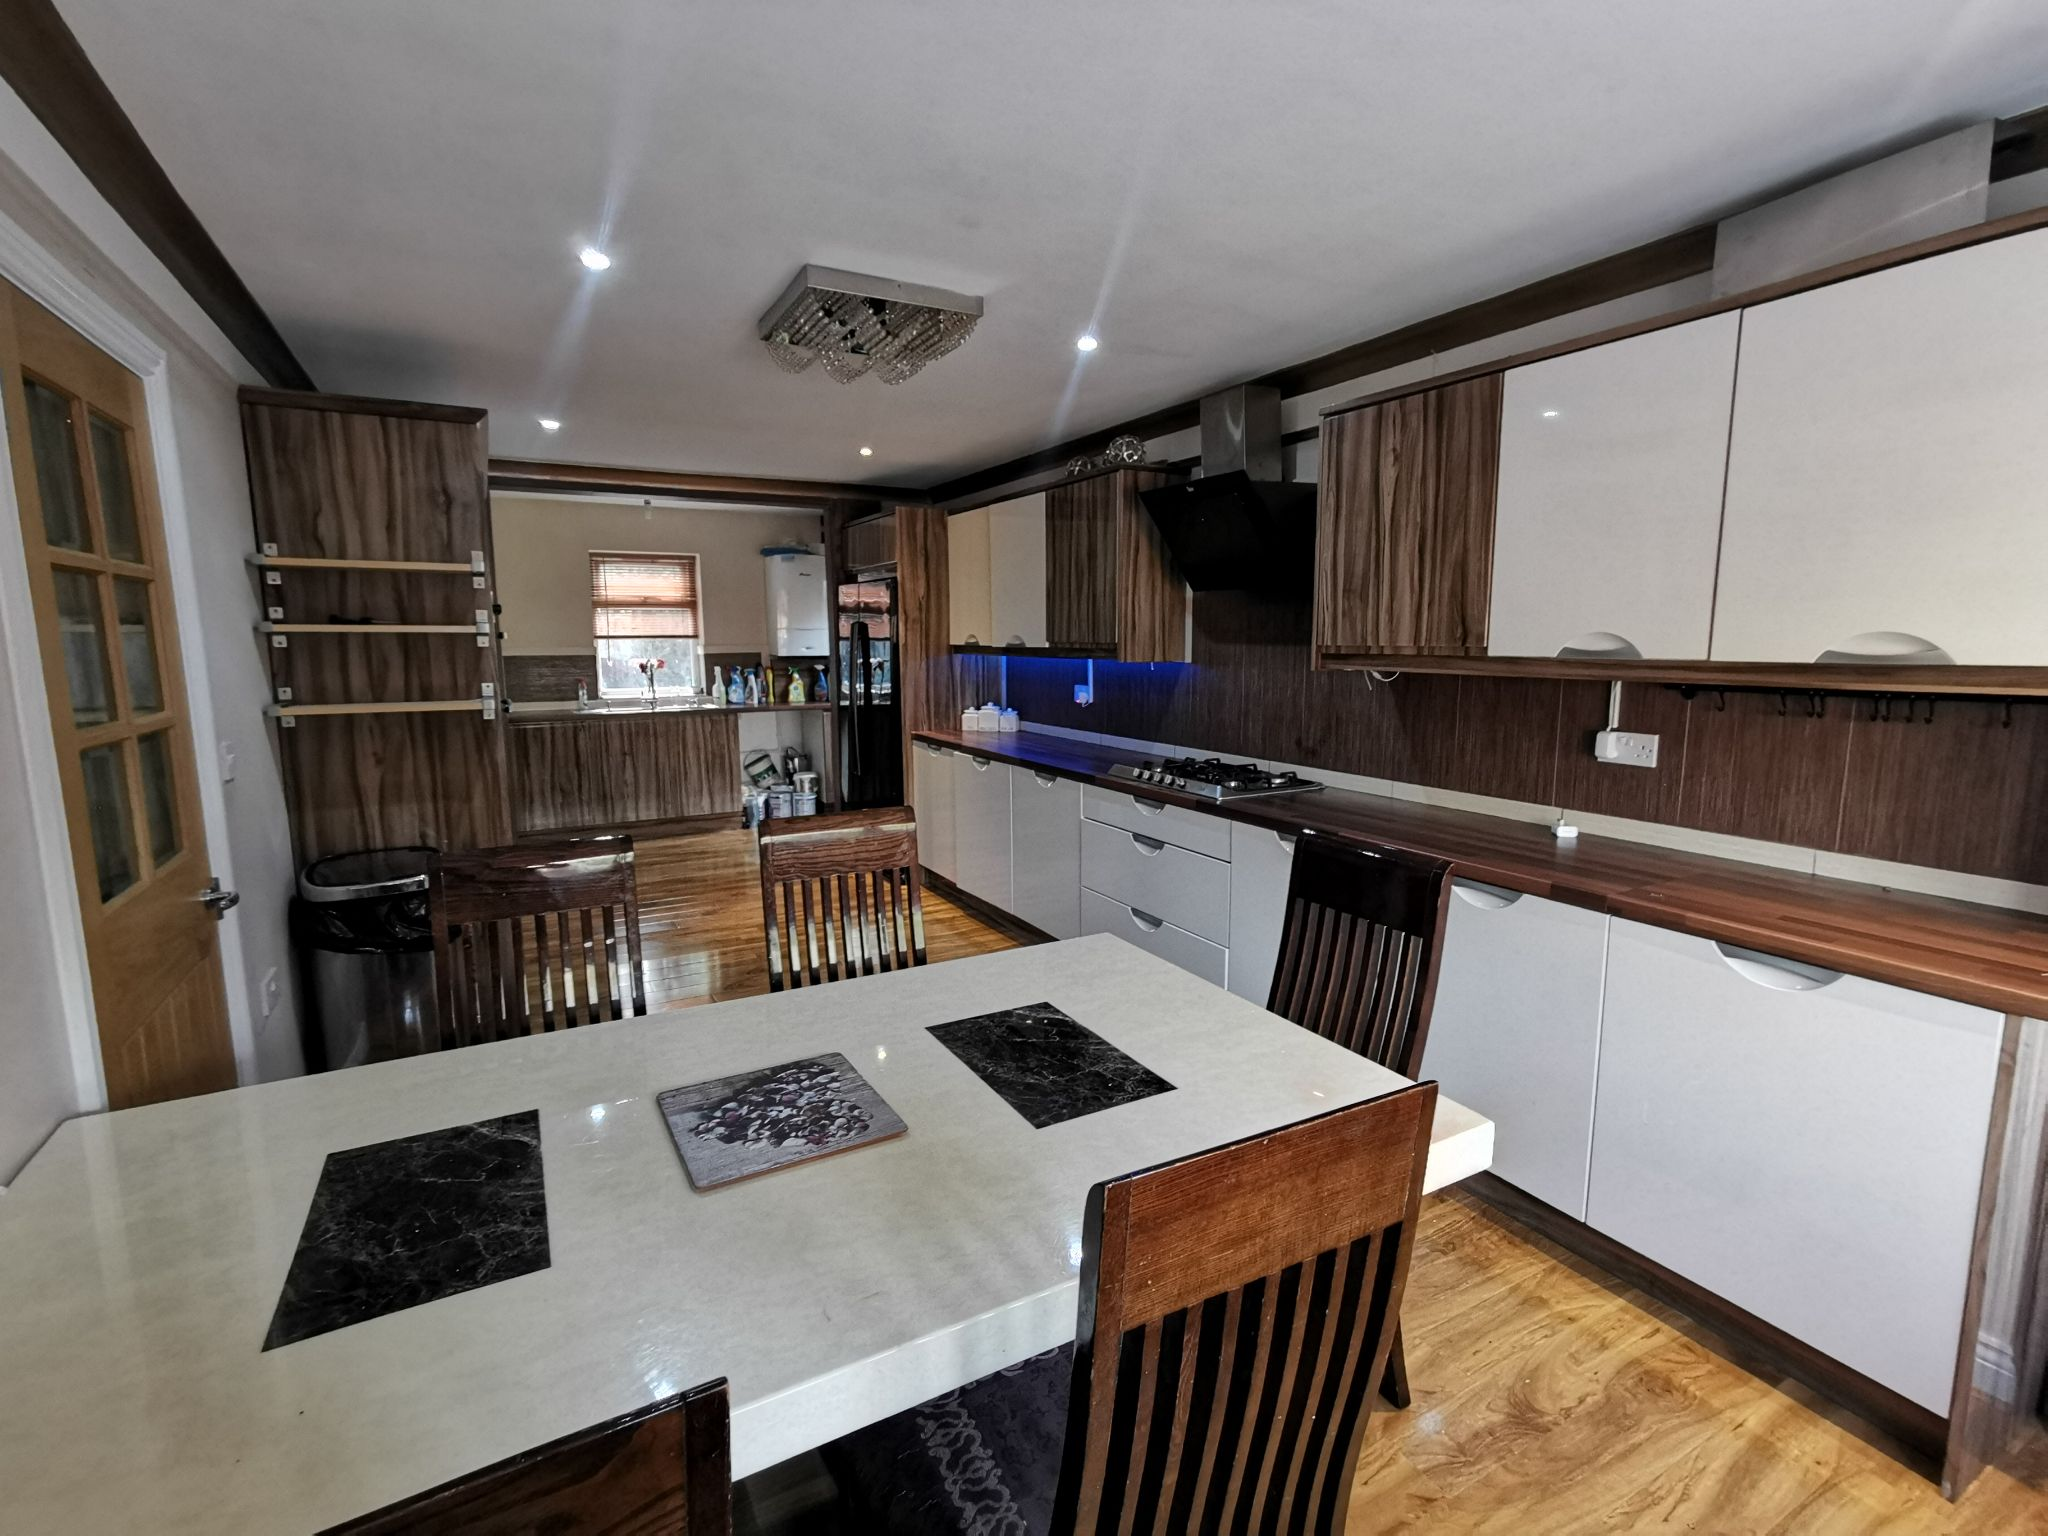 6 bedroom detached bungalow For Sale in Bradford - Photograph 5.